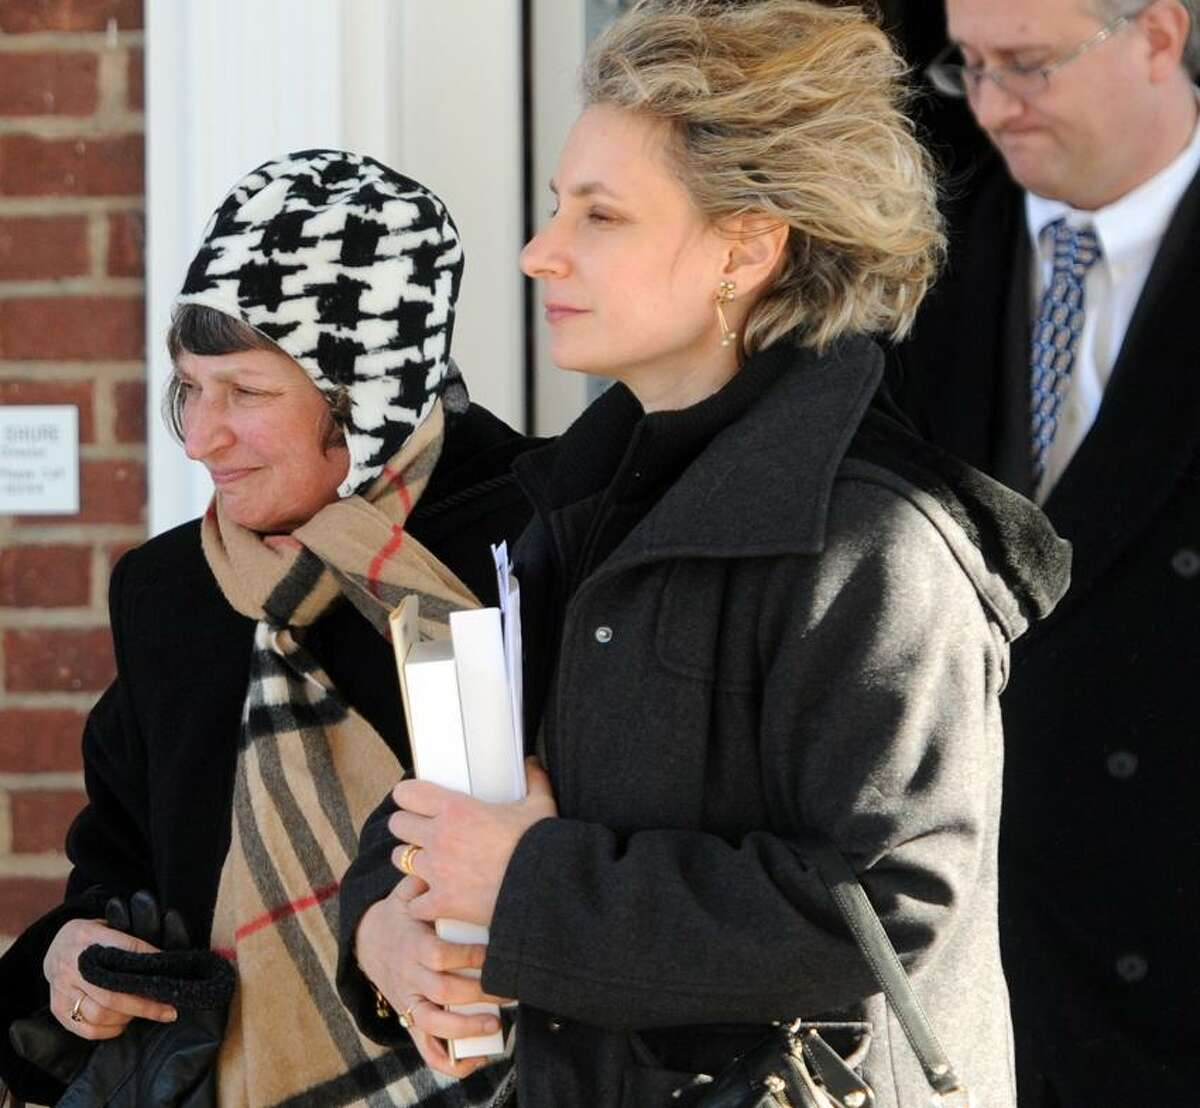 After funeral services, Dr. Mel Goldstein's wife Arlene Goldstein, left, and her daughter Laura Goldstein, center, leave the Robert E. Shure Funeral Home in New Haven for Dr.Mel's interment. Photo by Peter Hvizdak / New Haven Register